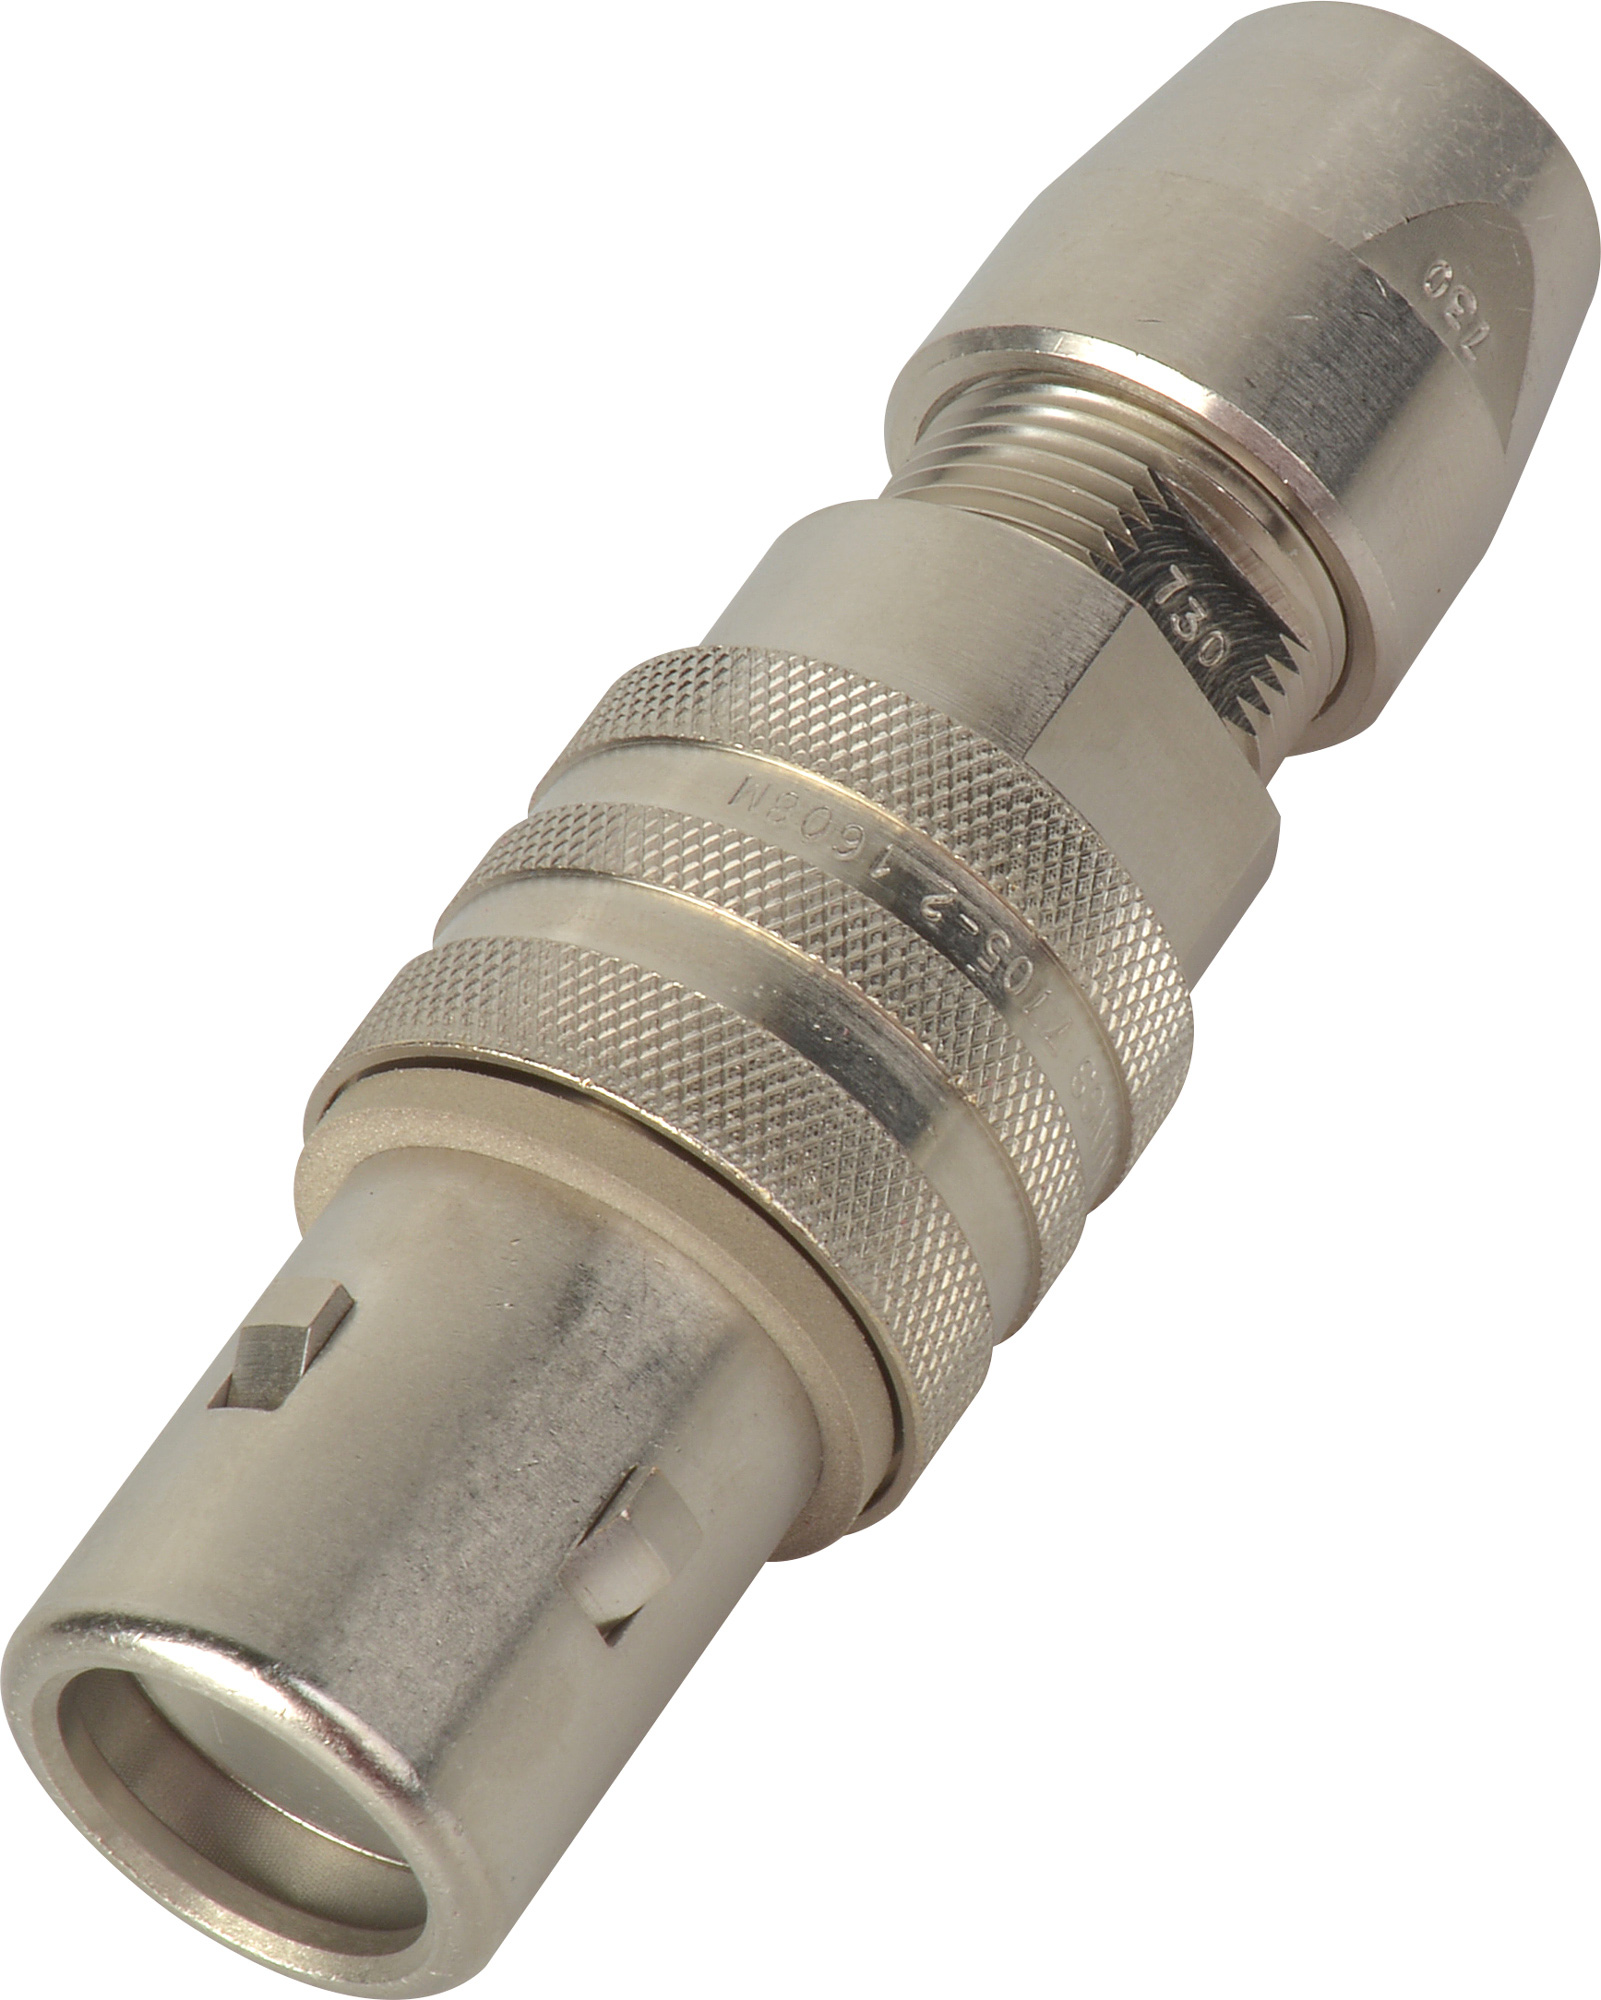 Kings 7705-2 Triax Tri-Loc Male Cable End for Belden 9267 KC-77052